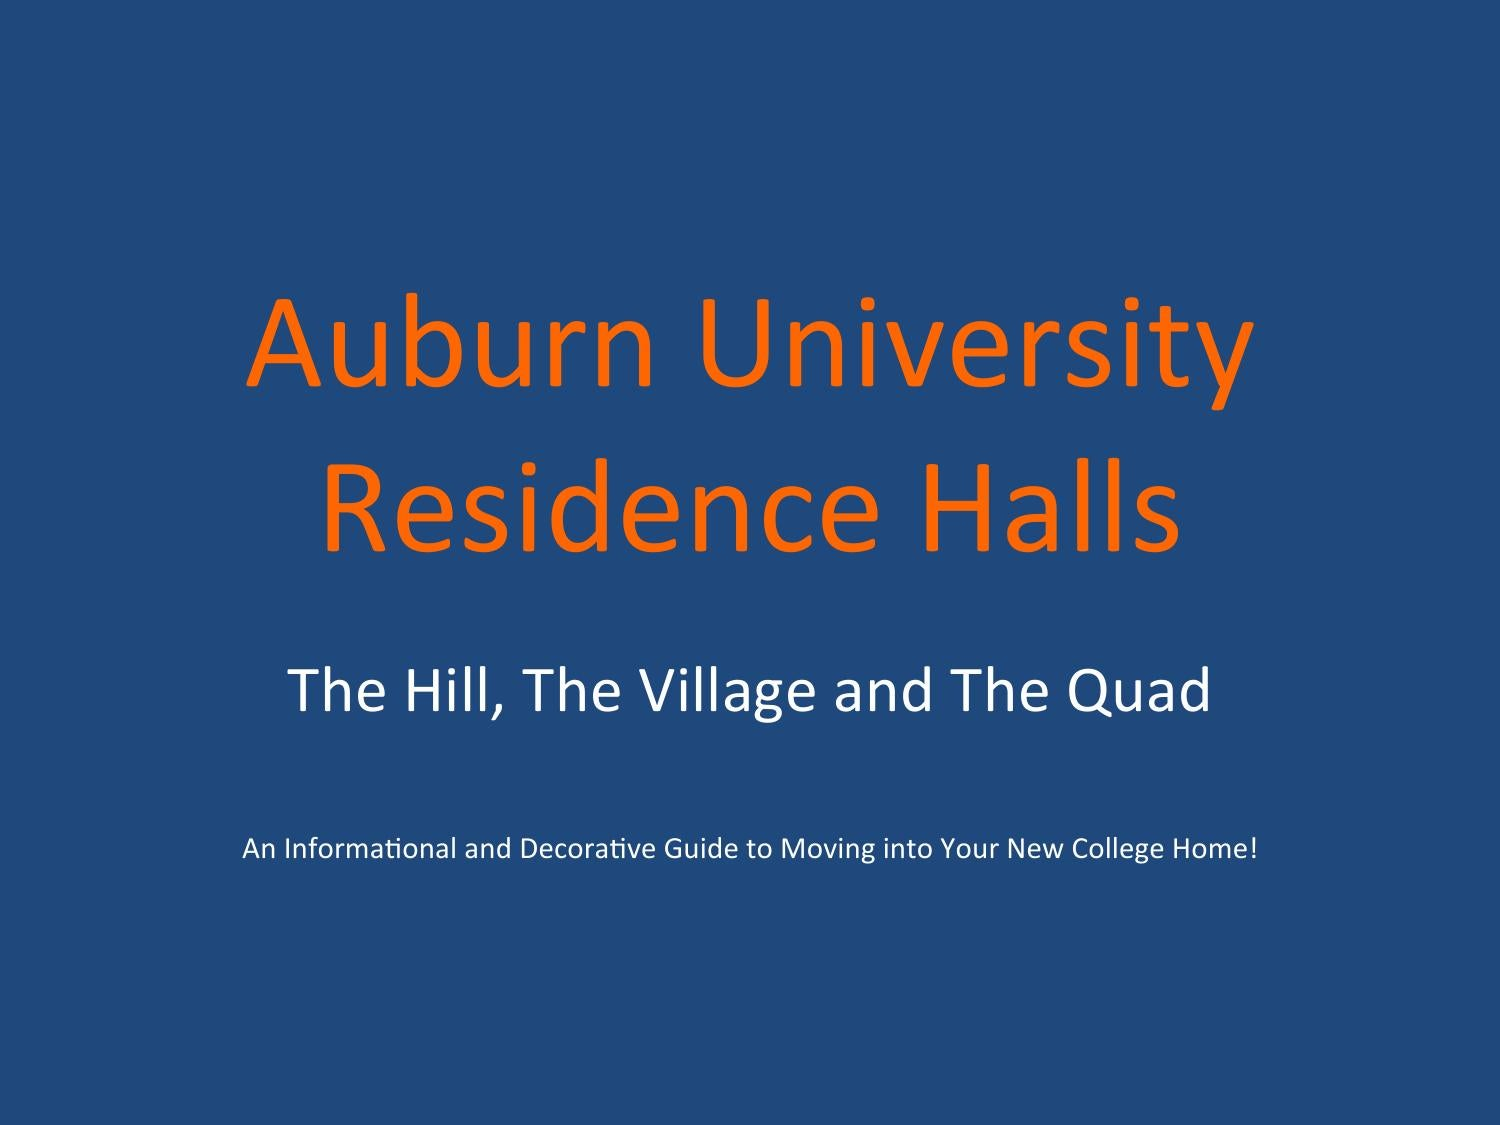 auburn university singles Auburn university (au or auburn)  south donahue opened in 2013 and is a single residence hall located on the corner of south donahue and west samford,.